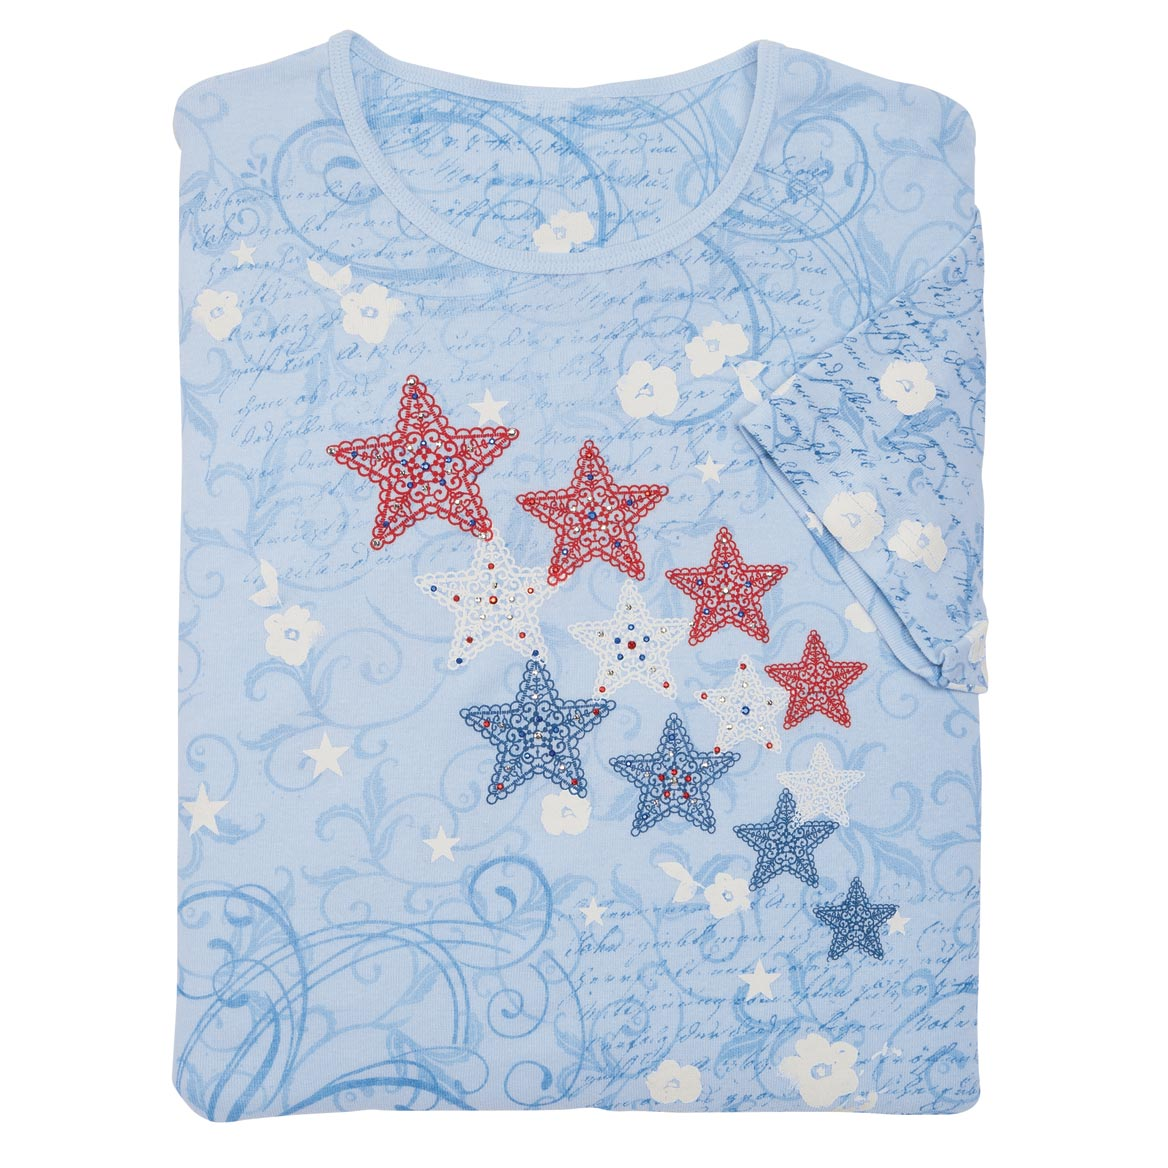 Star Slant T-Shirt